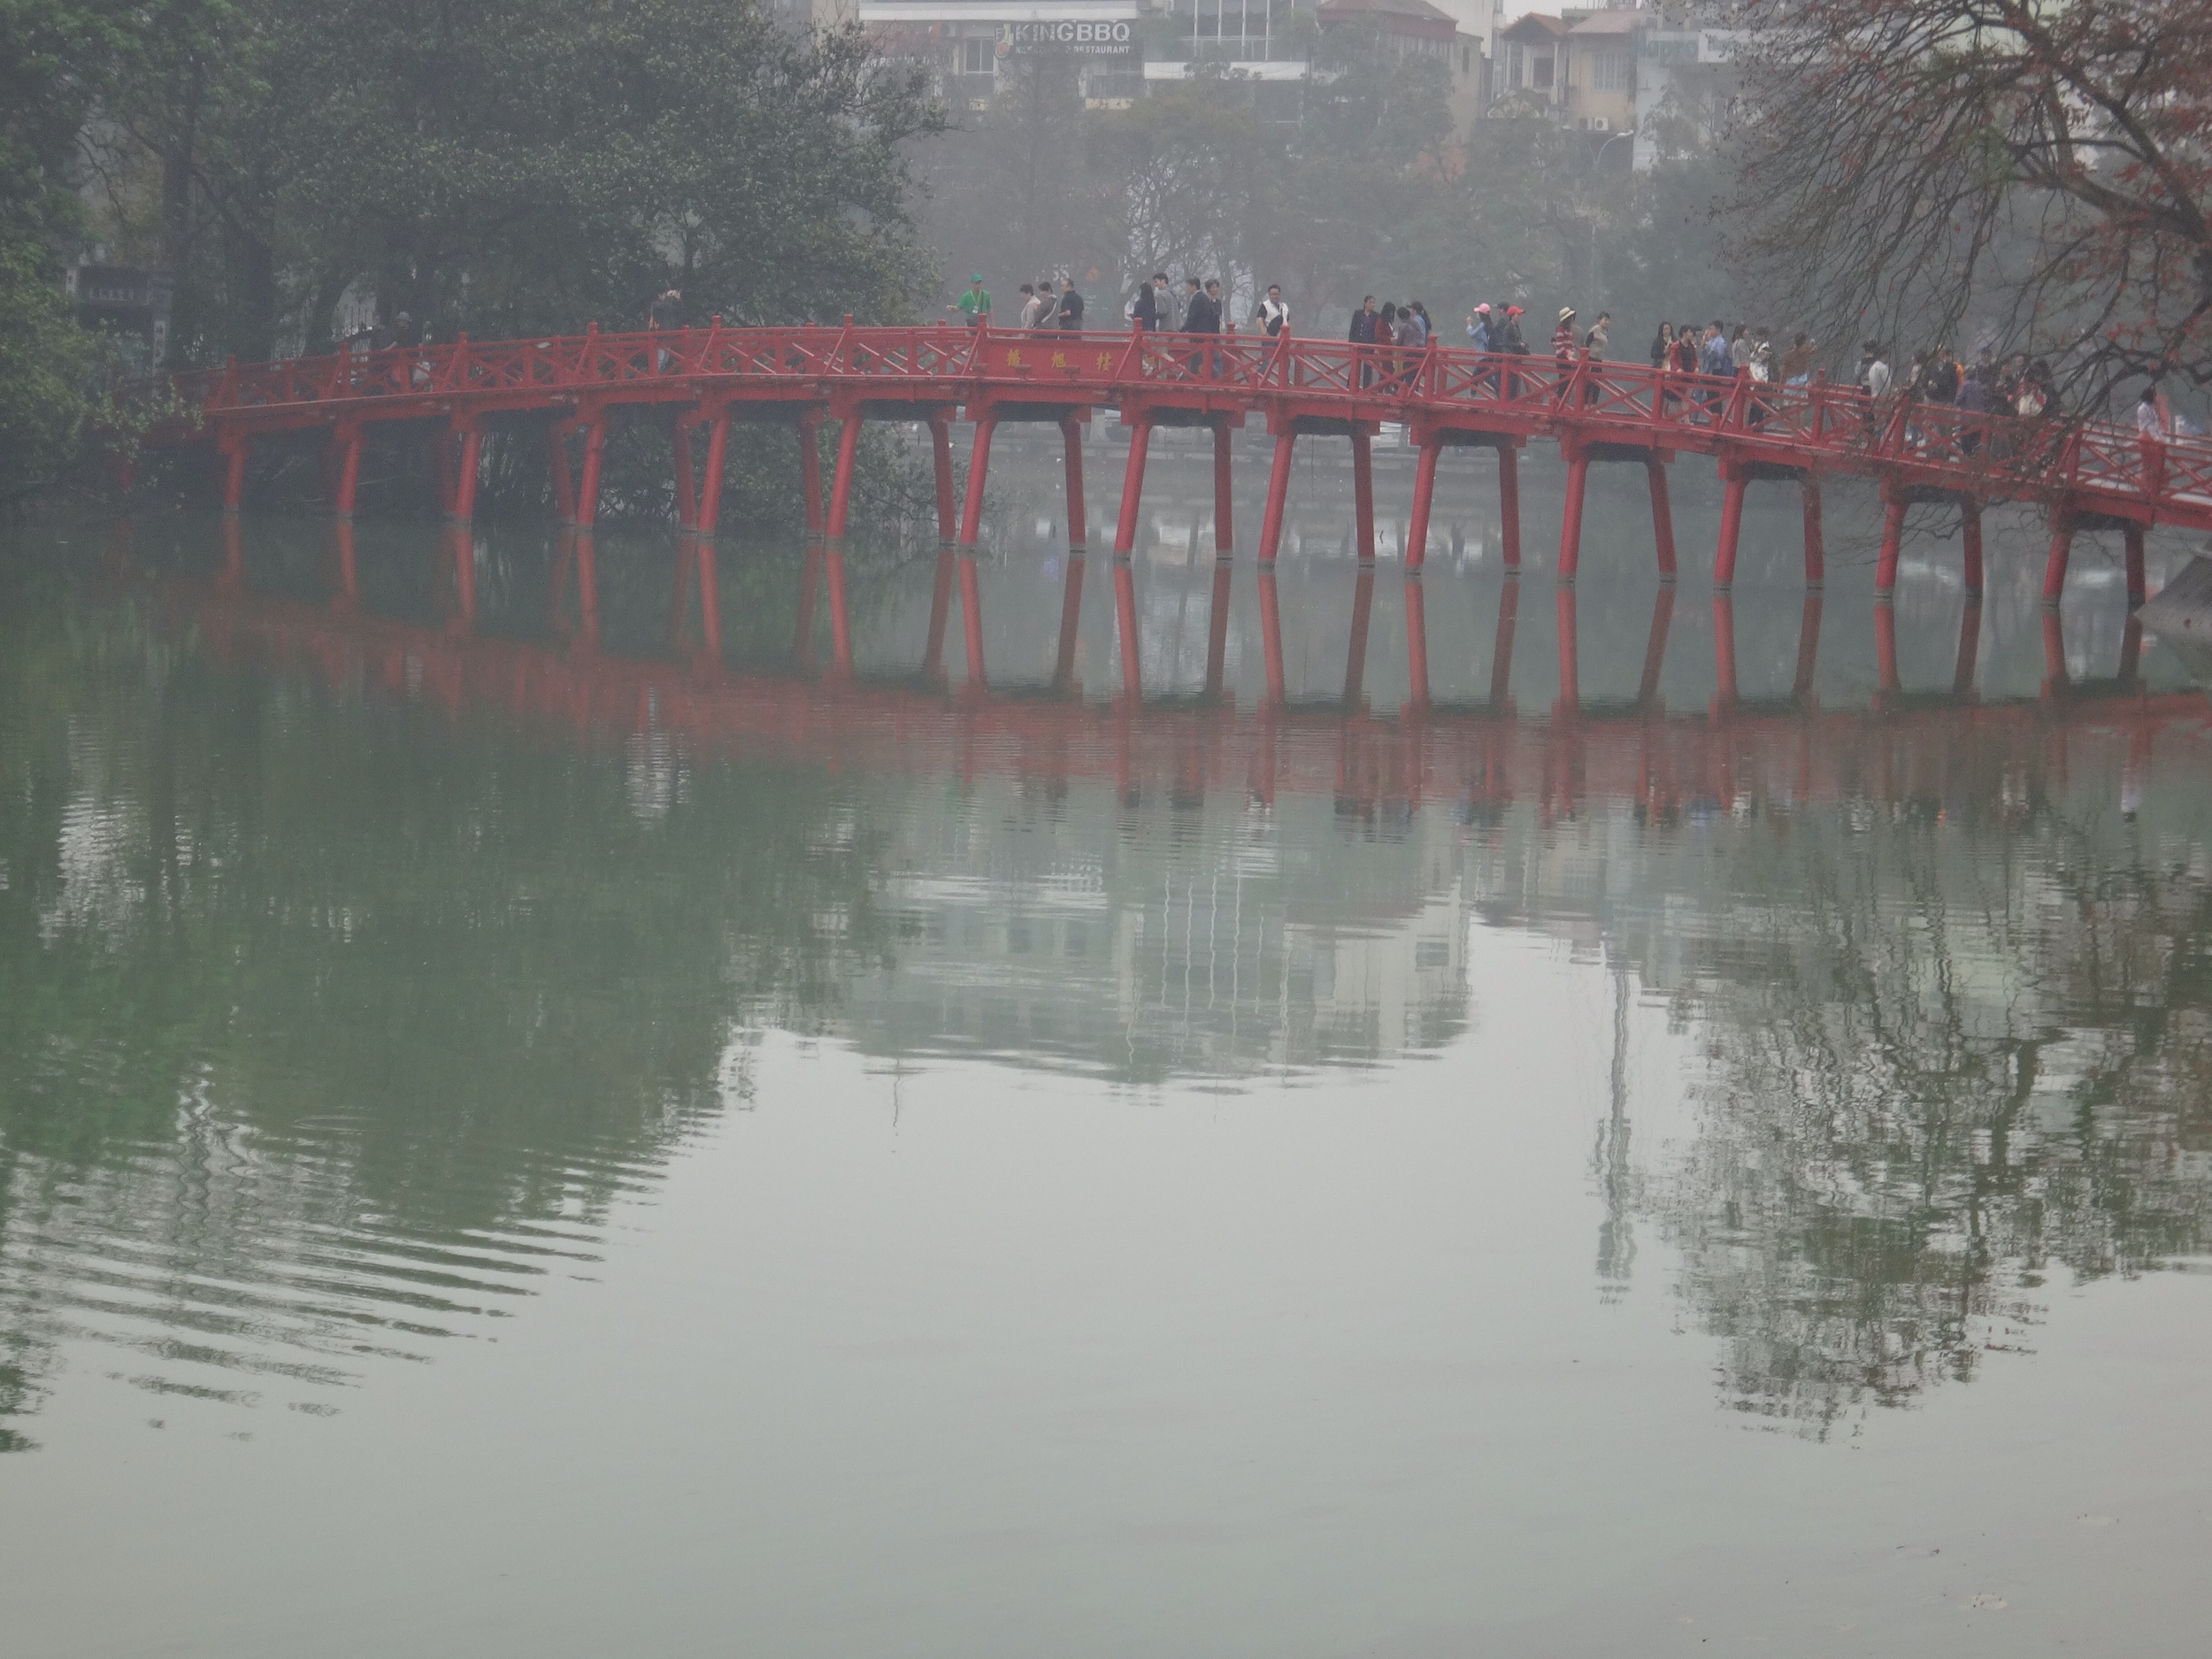 Rising Sun Bridge leading to Ngoc Son Temple, built in the 18th century.